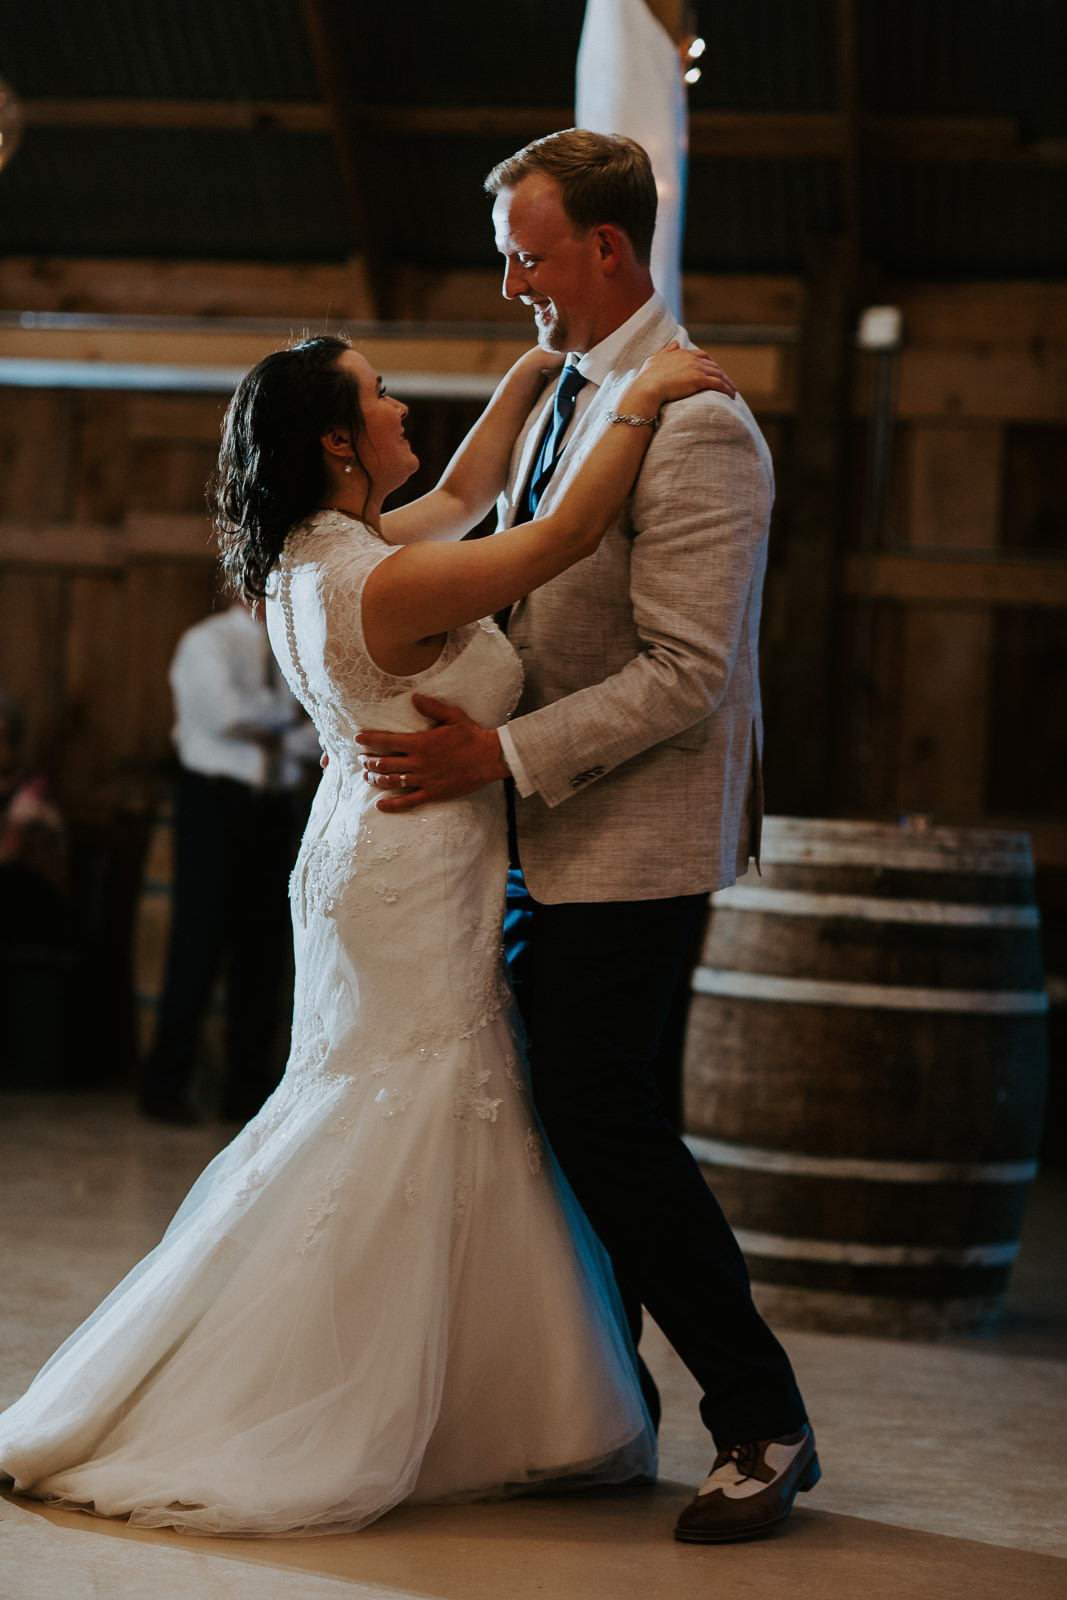 Portrait of bride and groom's first dance in barn with wine barrels